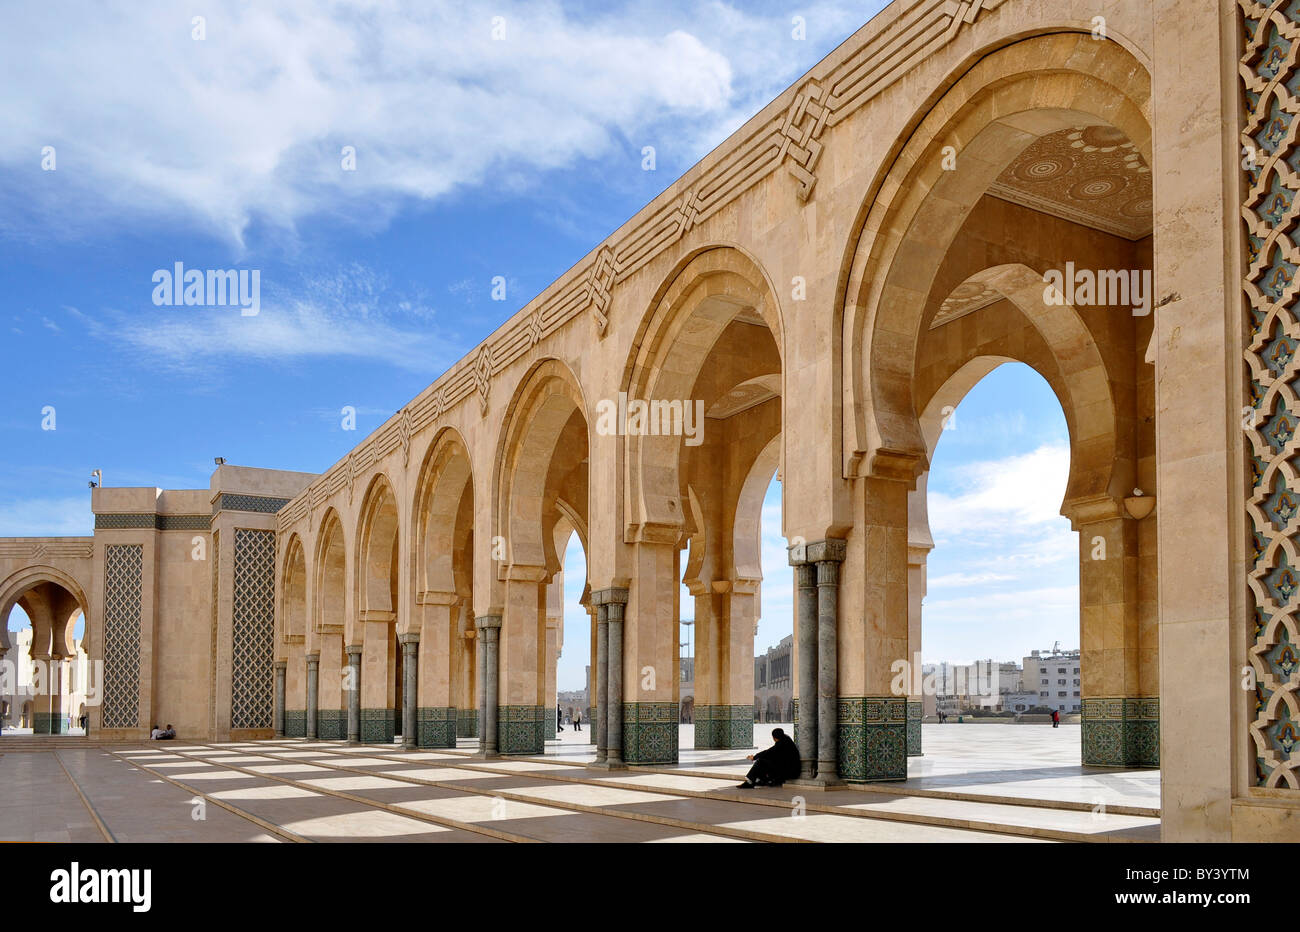 Casablanca Innenstadt, Moschee in der Innenstadt, Hassan II.-Moschee, Casablanca city center, mosque in the city, - Stock Image